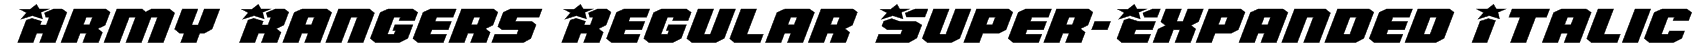 Army Rangers Regular Super-Expanded Italic Font